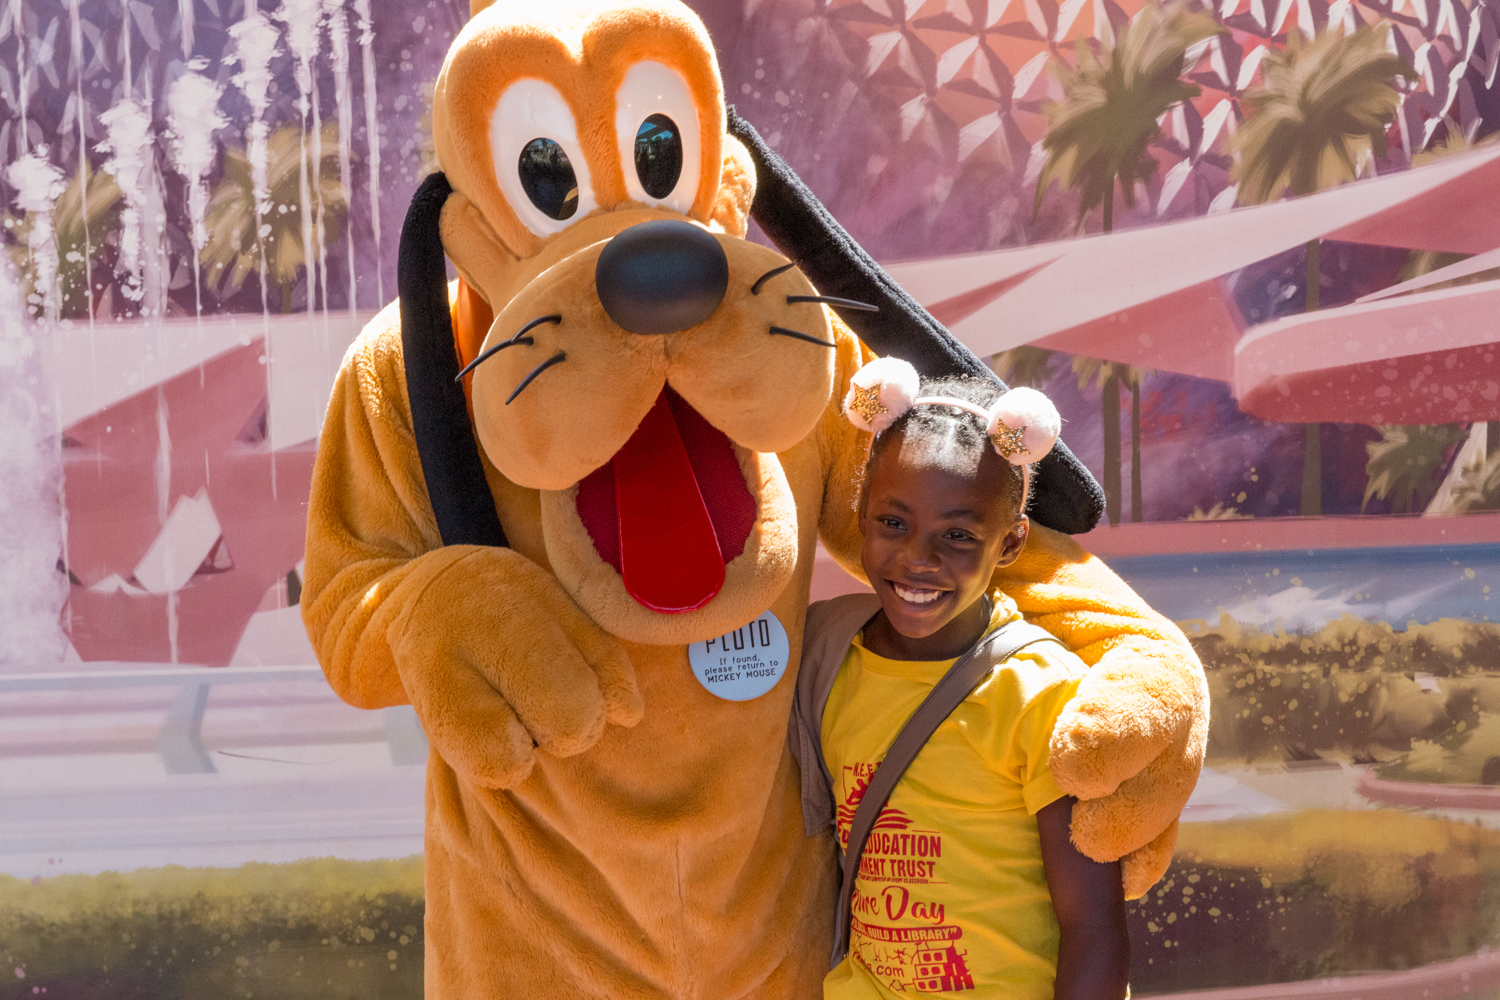 Student poses with Goofy